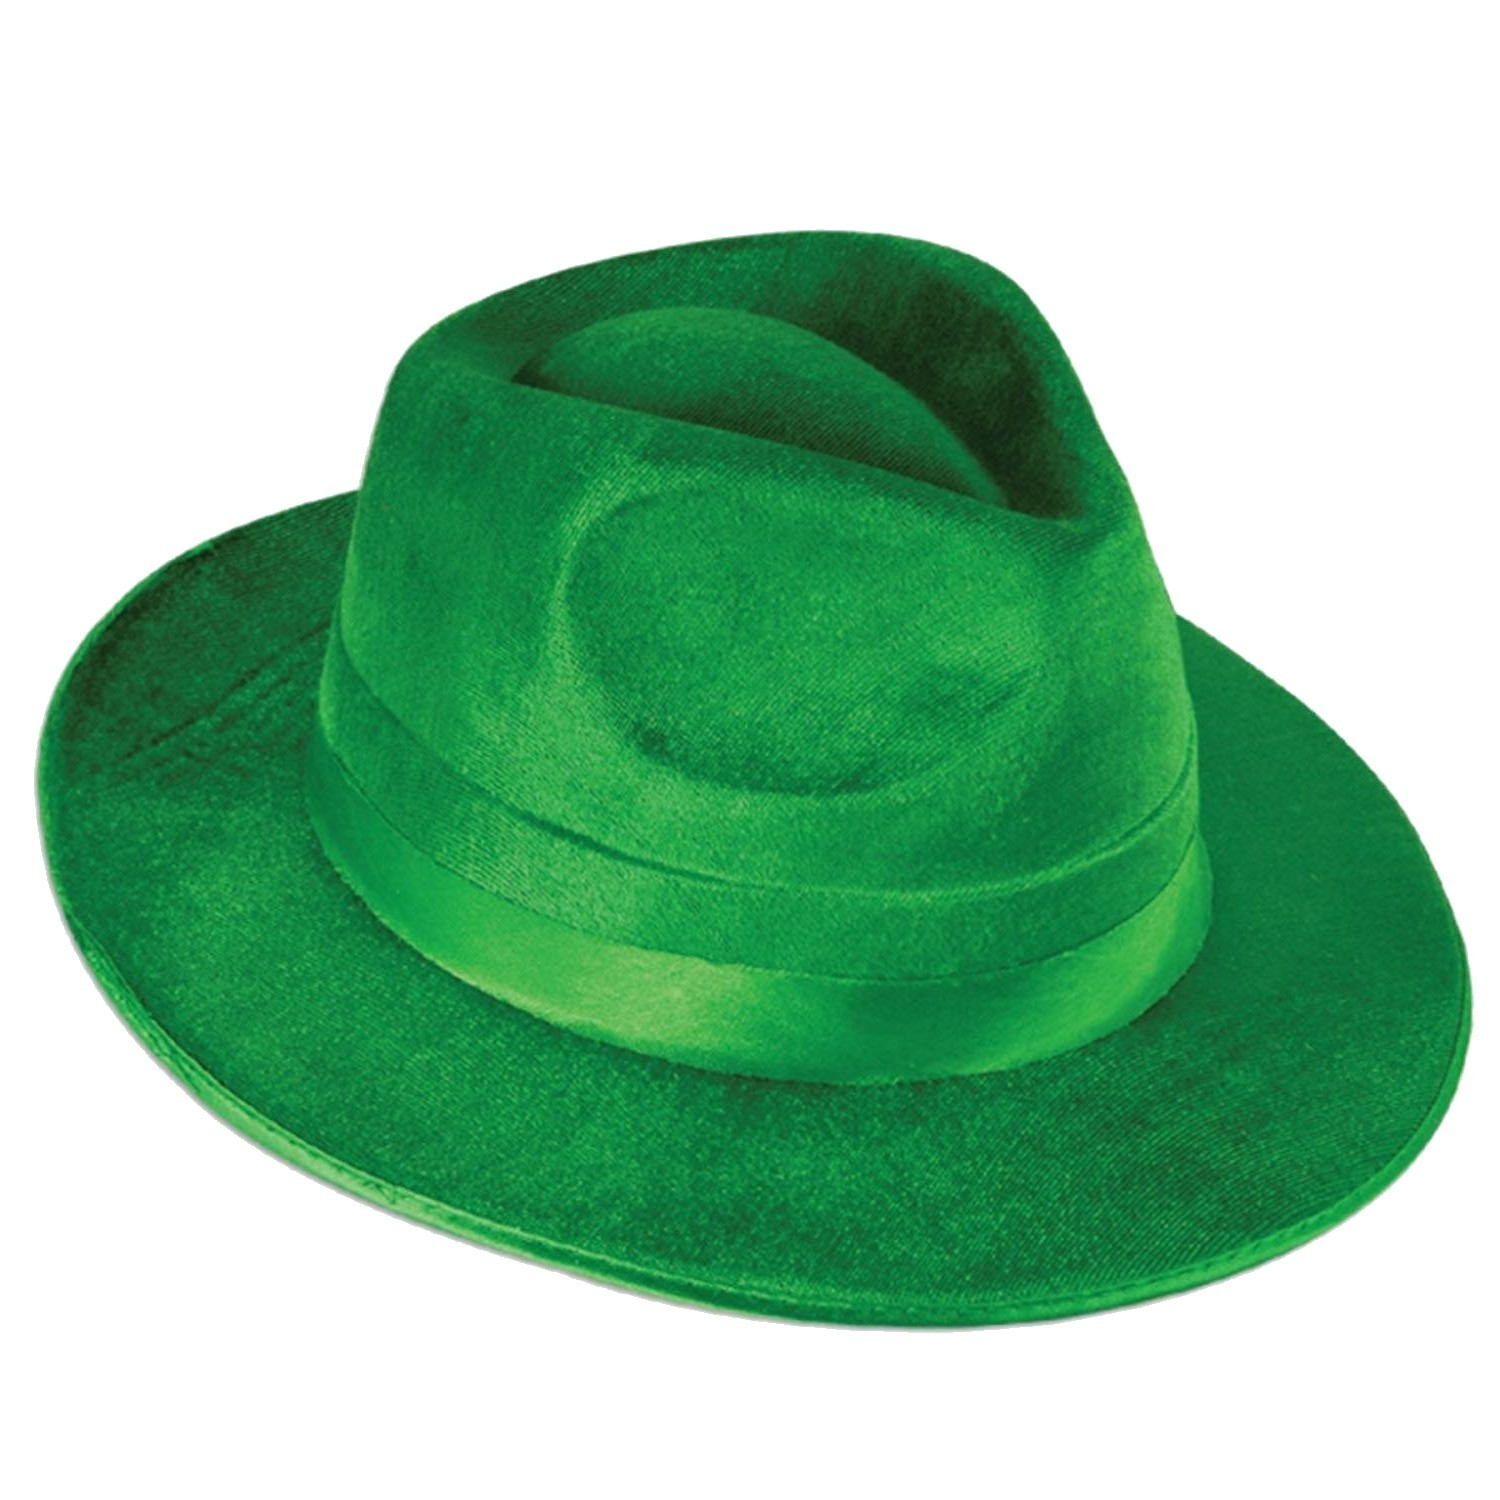 green-st-pats-hat